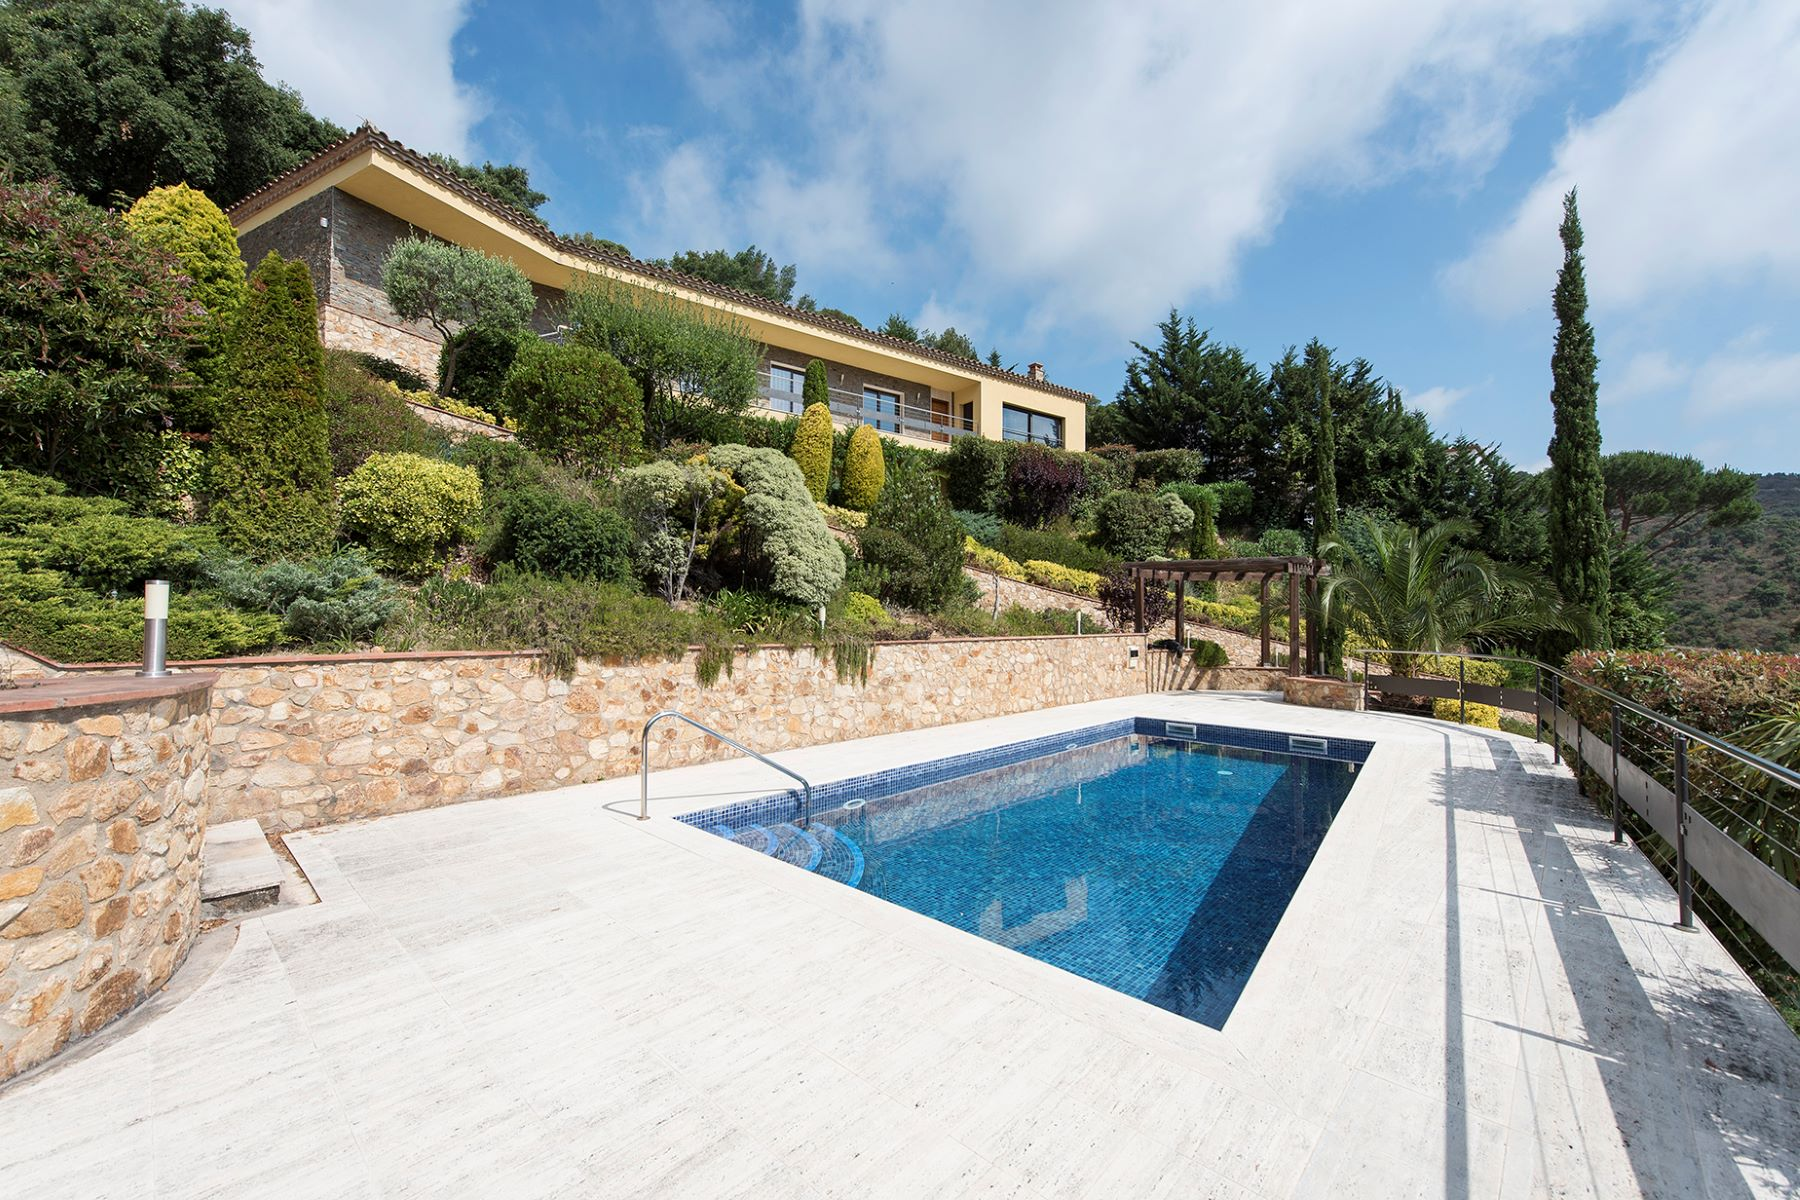 Single Family Home for Sale at House with lovely views in Mas Nou Playa De Aro, Costa Brava, 17250 Spain